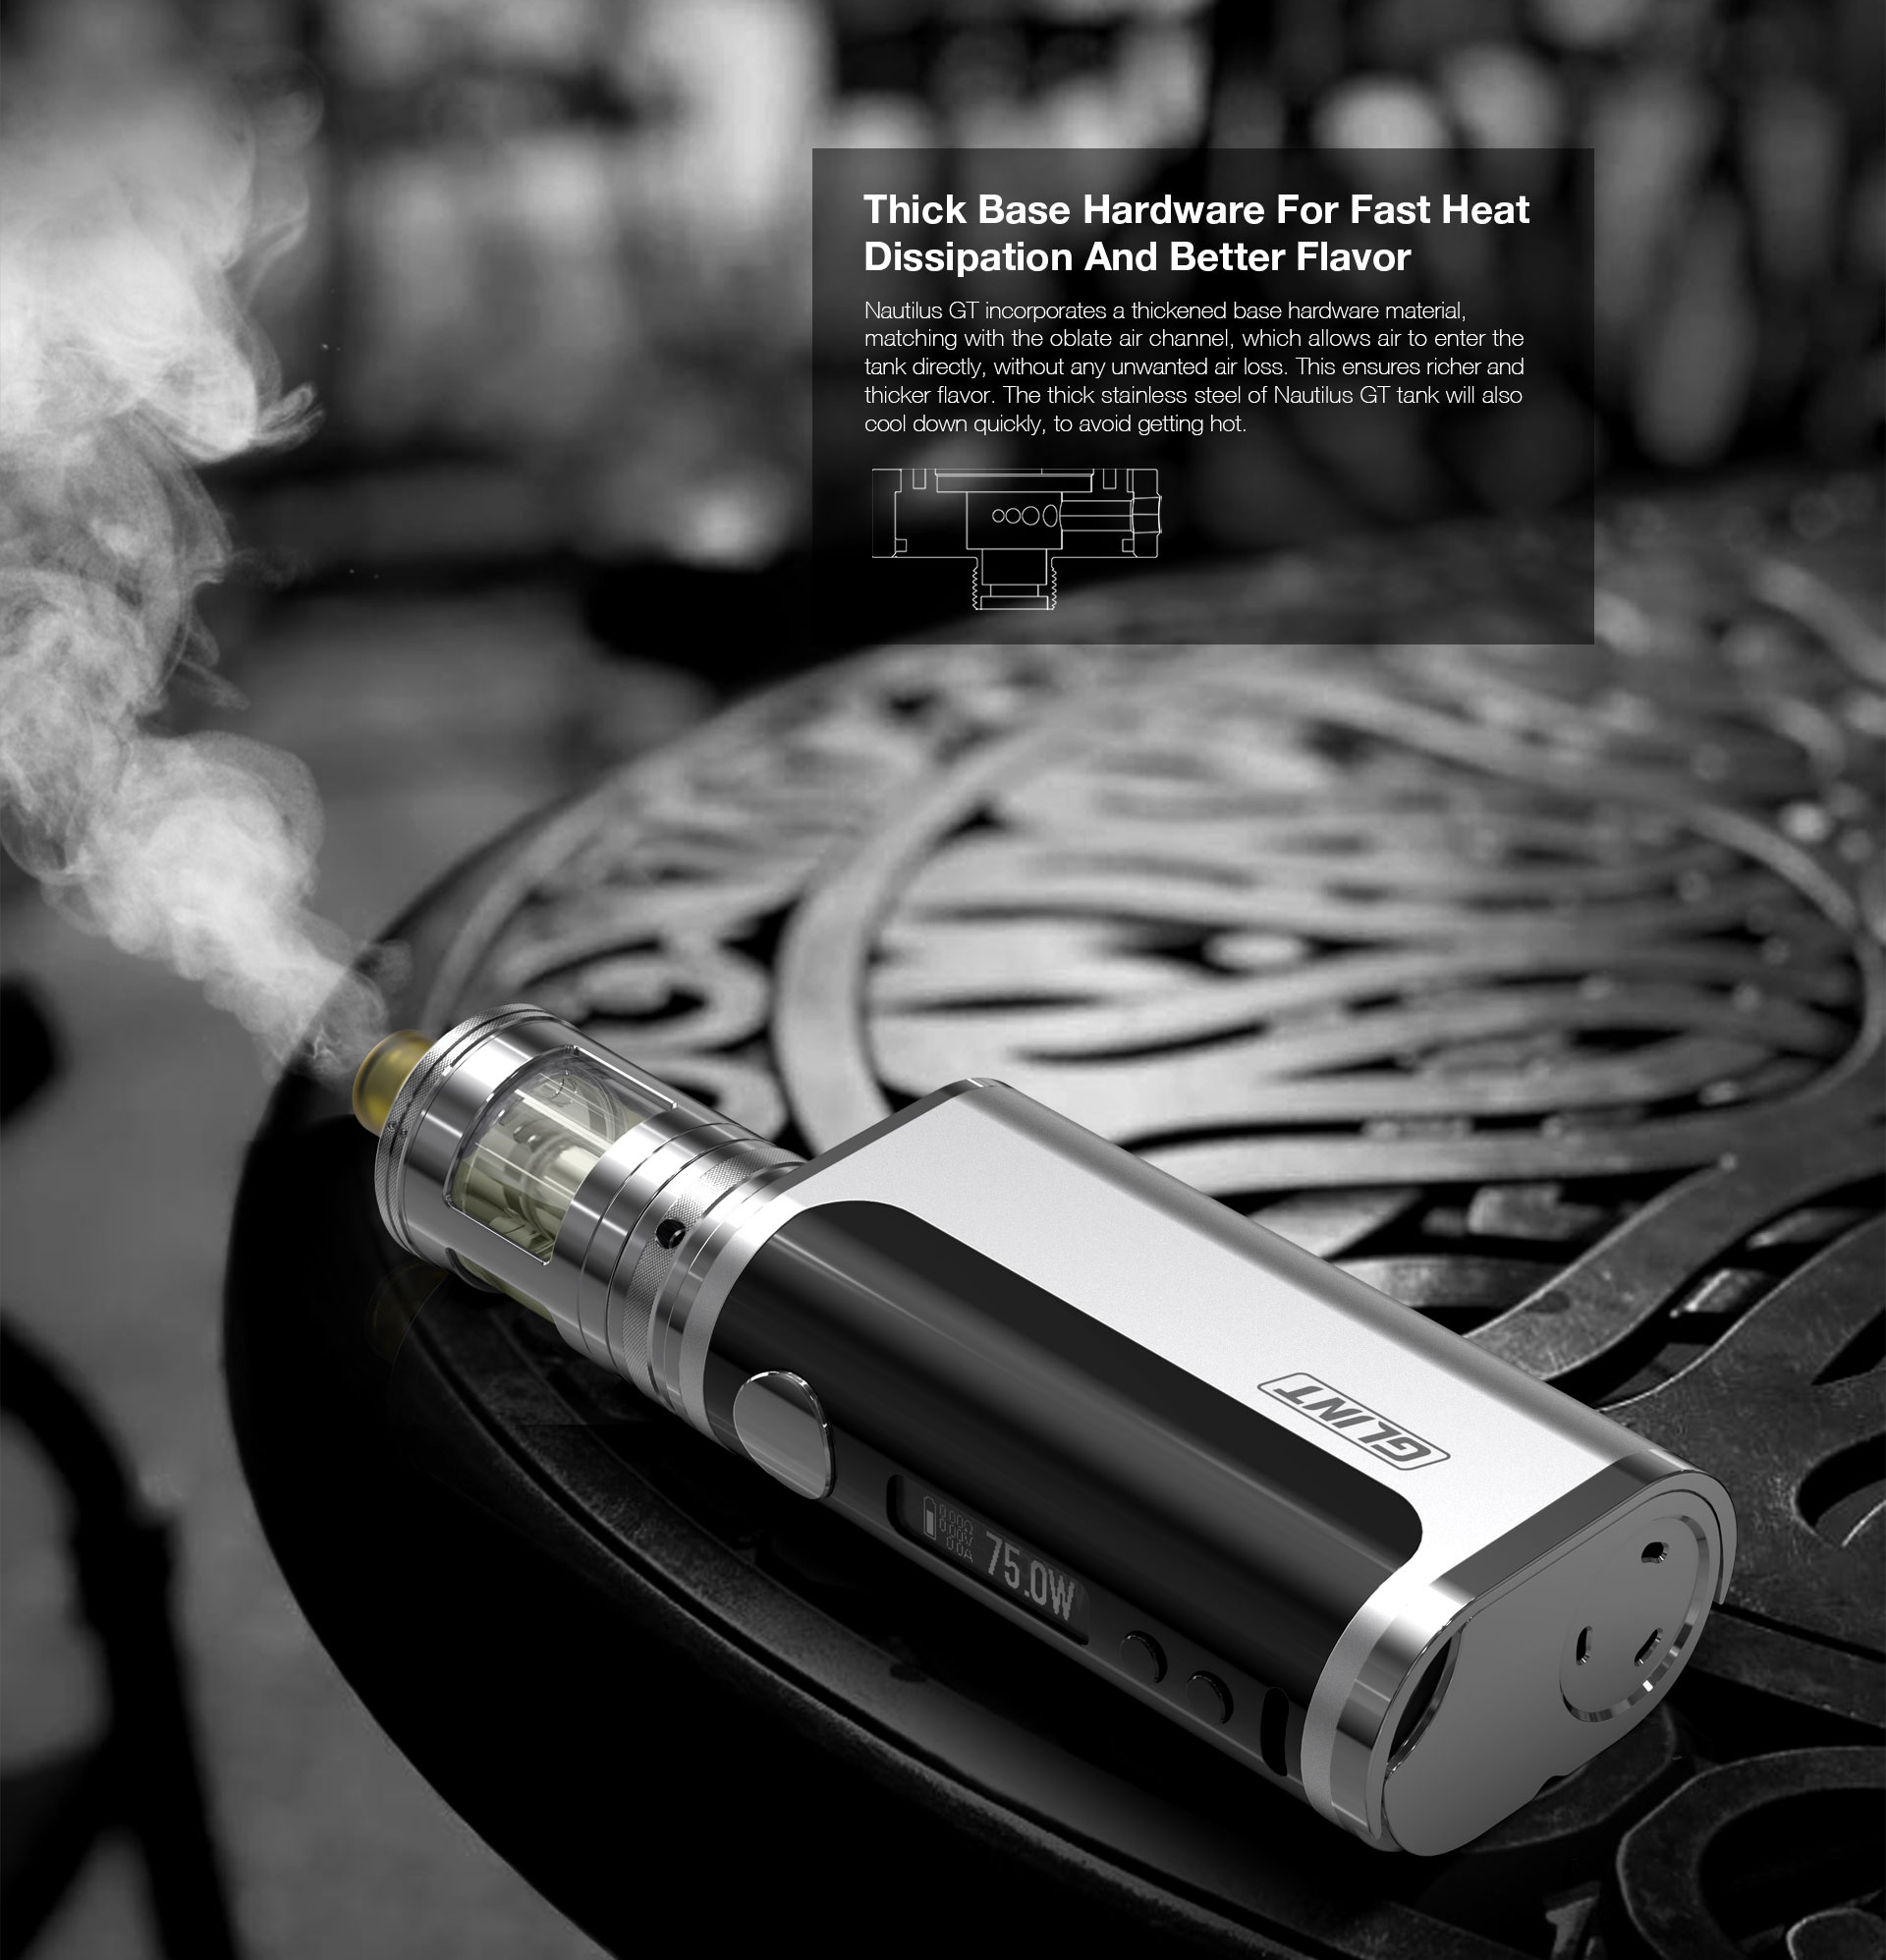 Aspire Nautilus GT Thick Base Hardware For Fast Heat Dissipation And Better Flavour